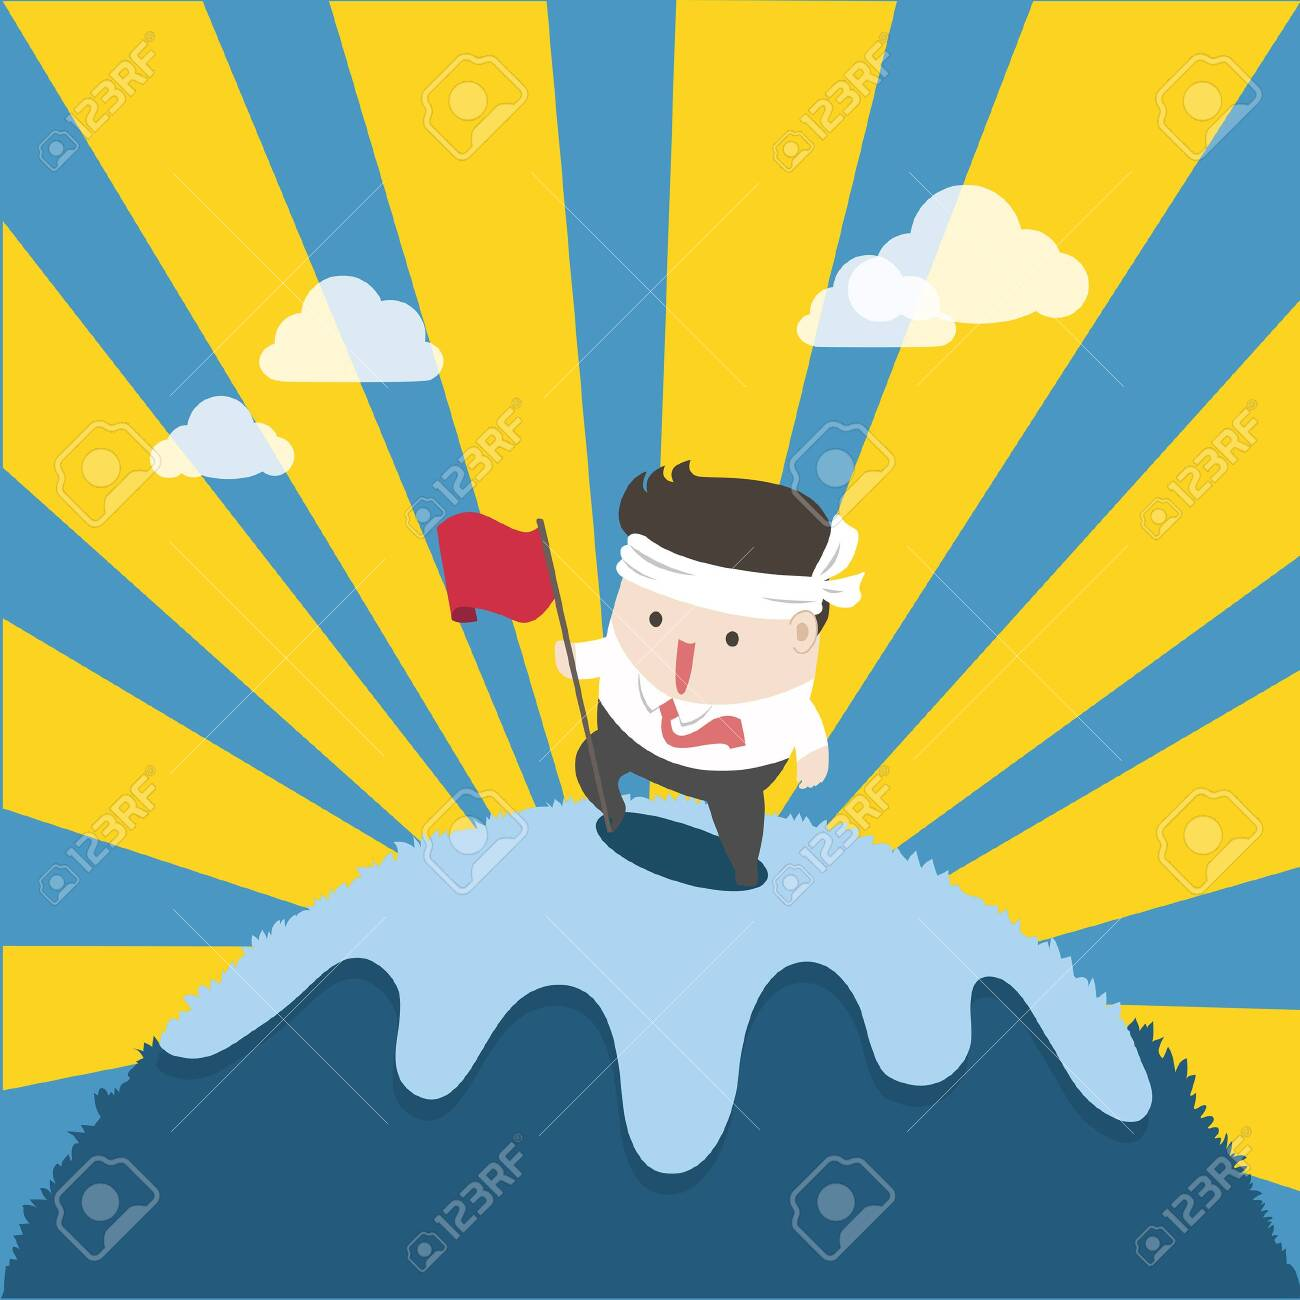 the businessman on top success and effort. To reach the goal is high like mountain. - 123424507